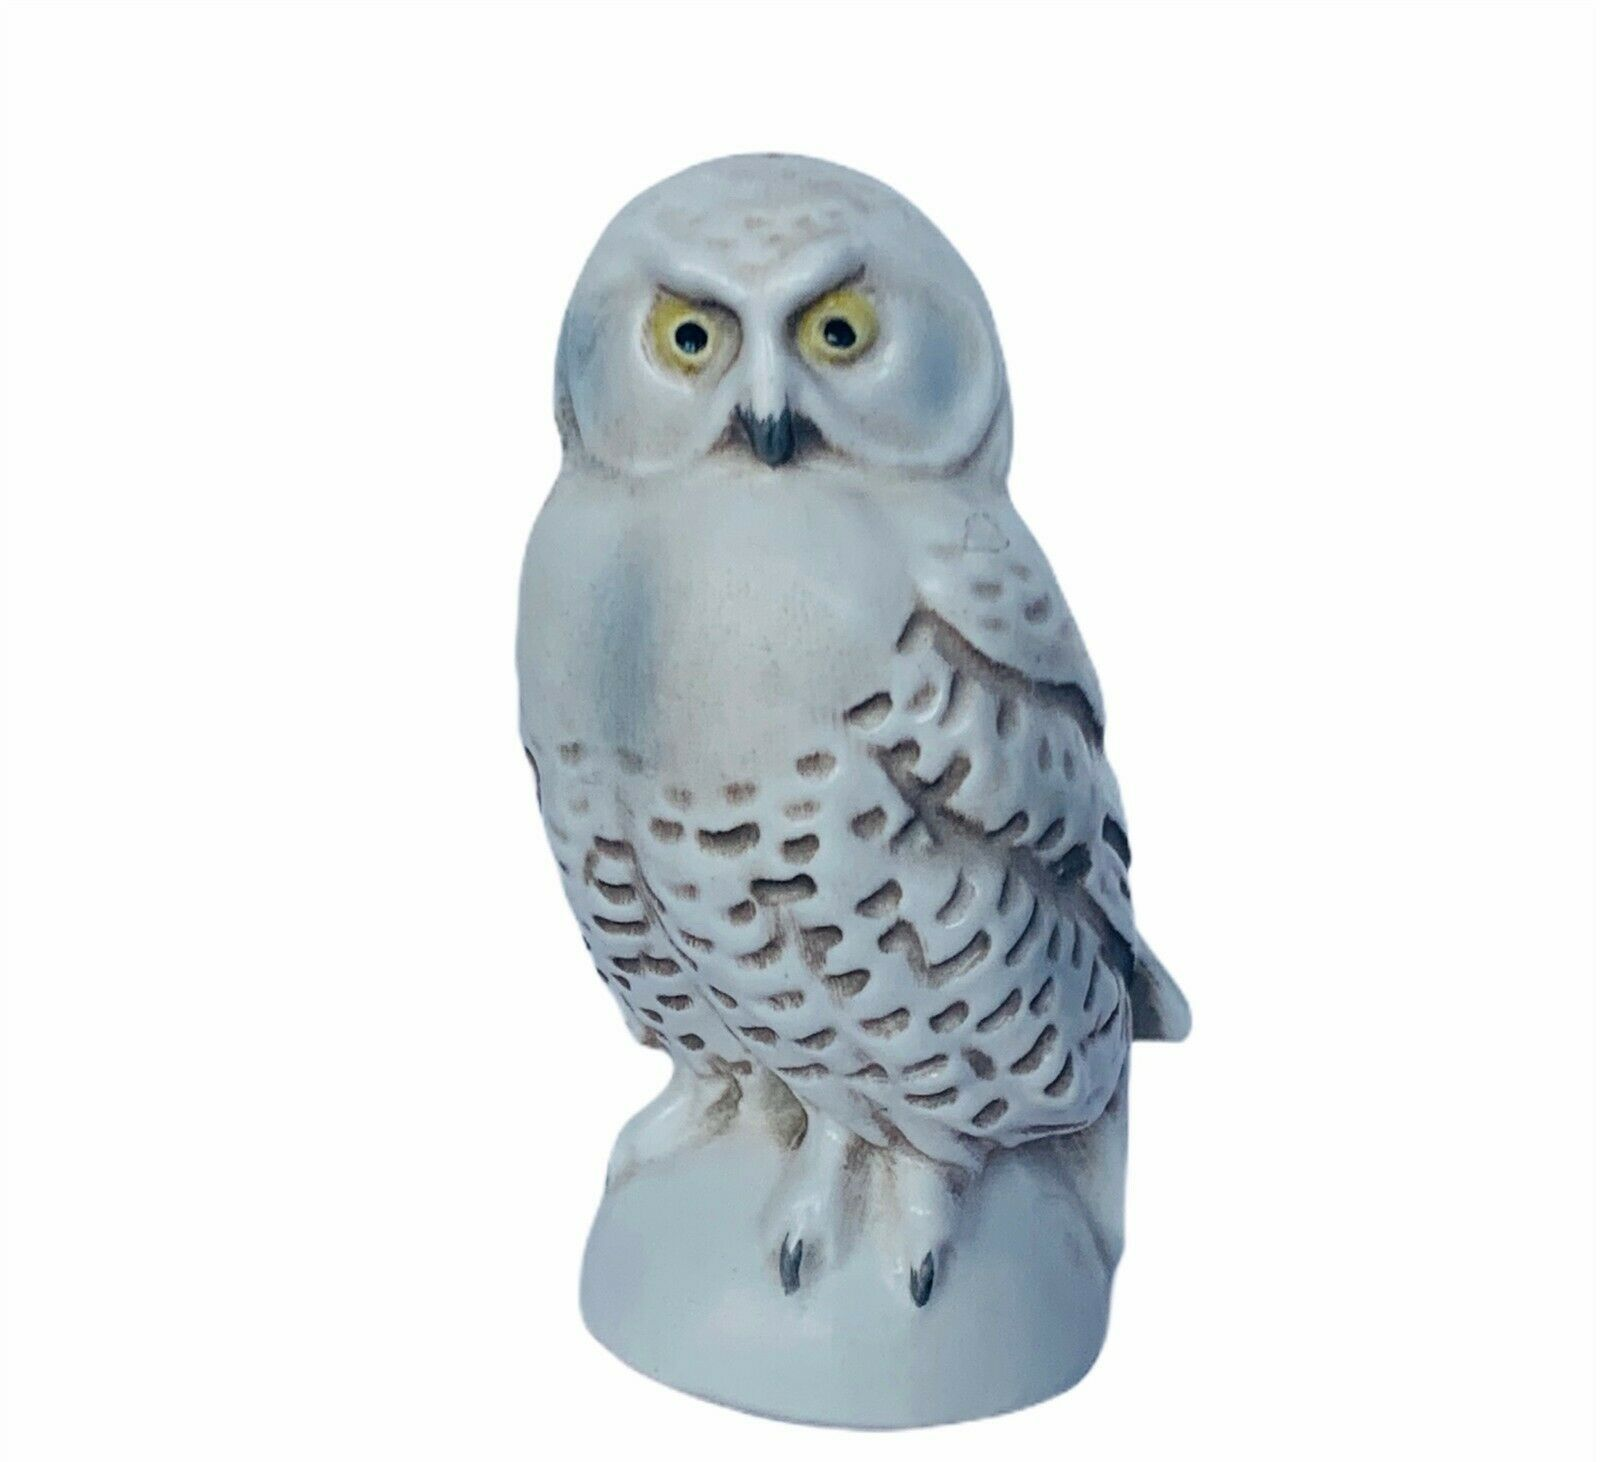 Primary image for Owl figurine vtg sculpture Goebel Hummel snow white winter Western Germany W mcm